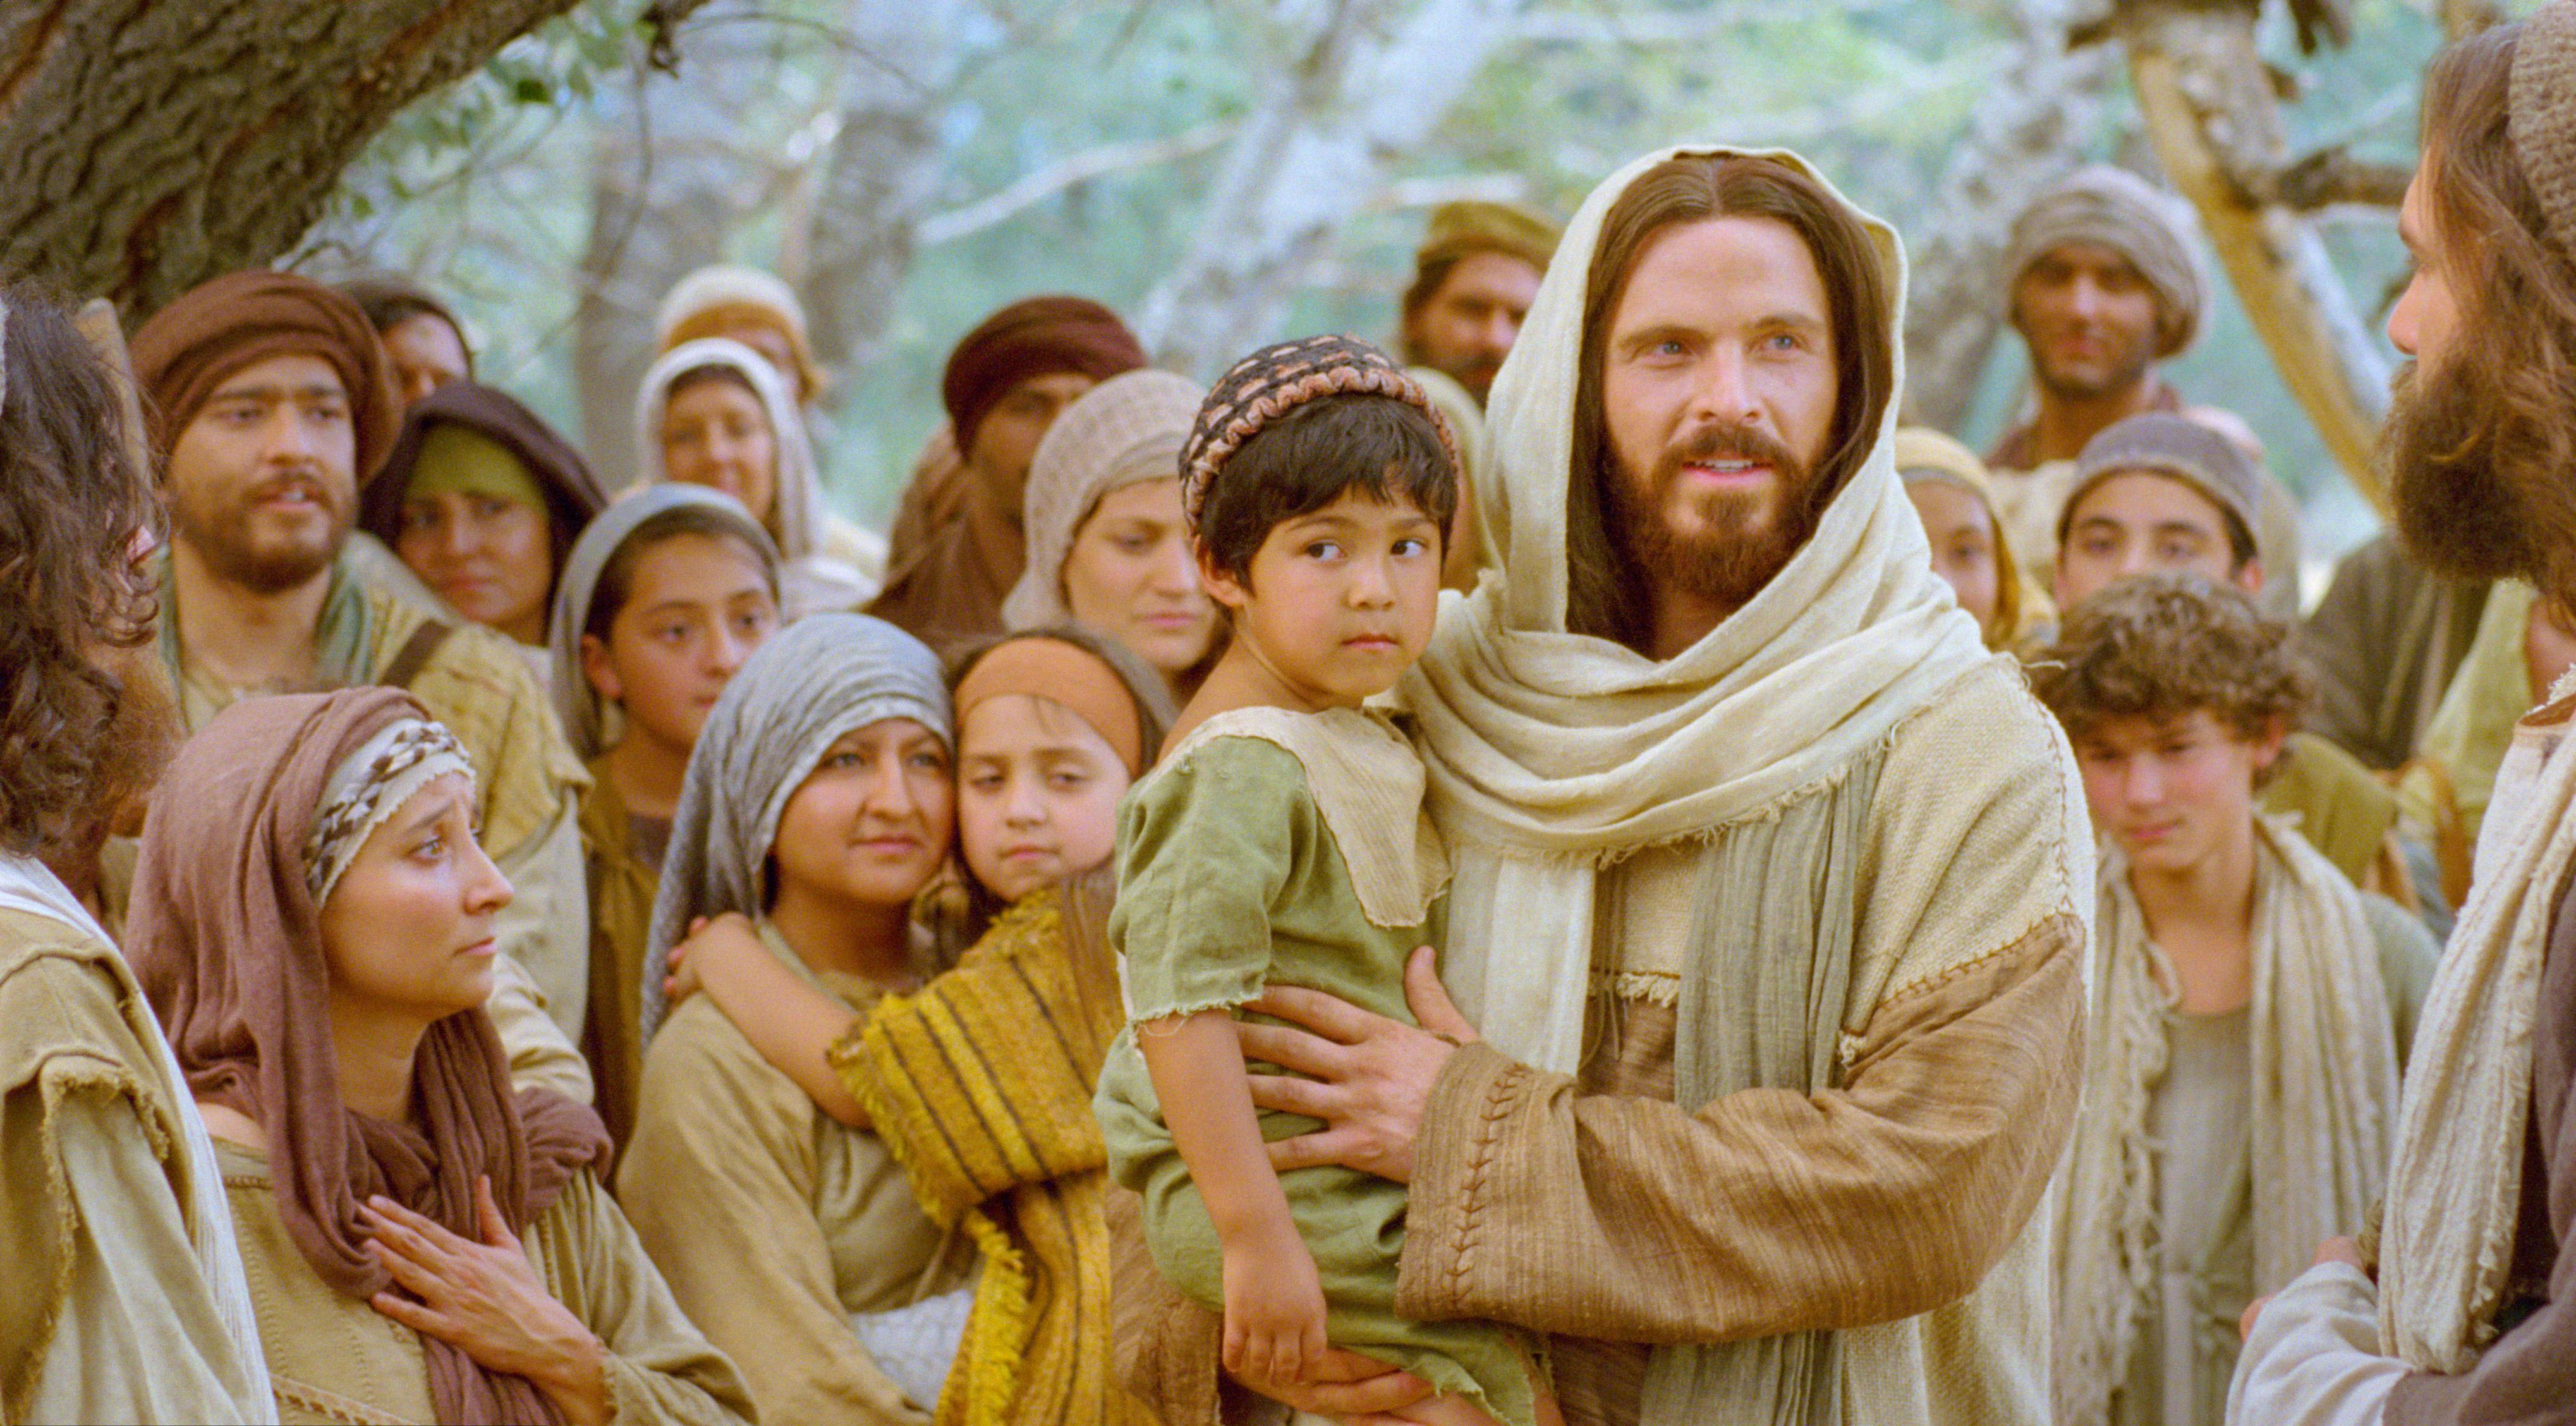 Photo released with Friday's LDS church news statement. A depiction of Jesus Christ with a child. (Photo: Intellectual Reserve Inc.)